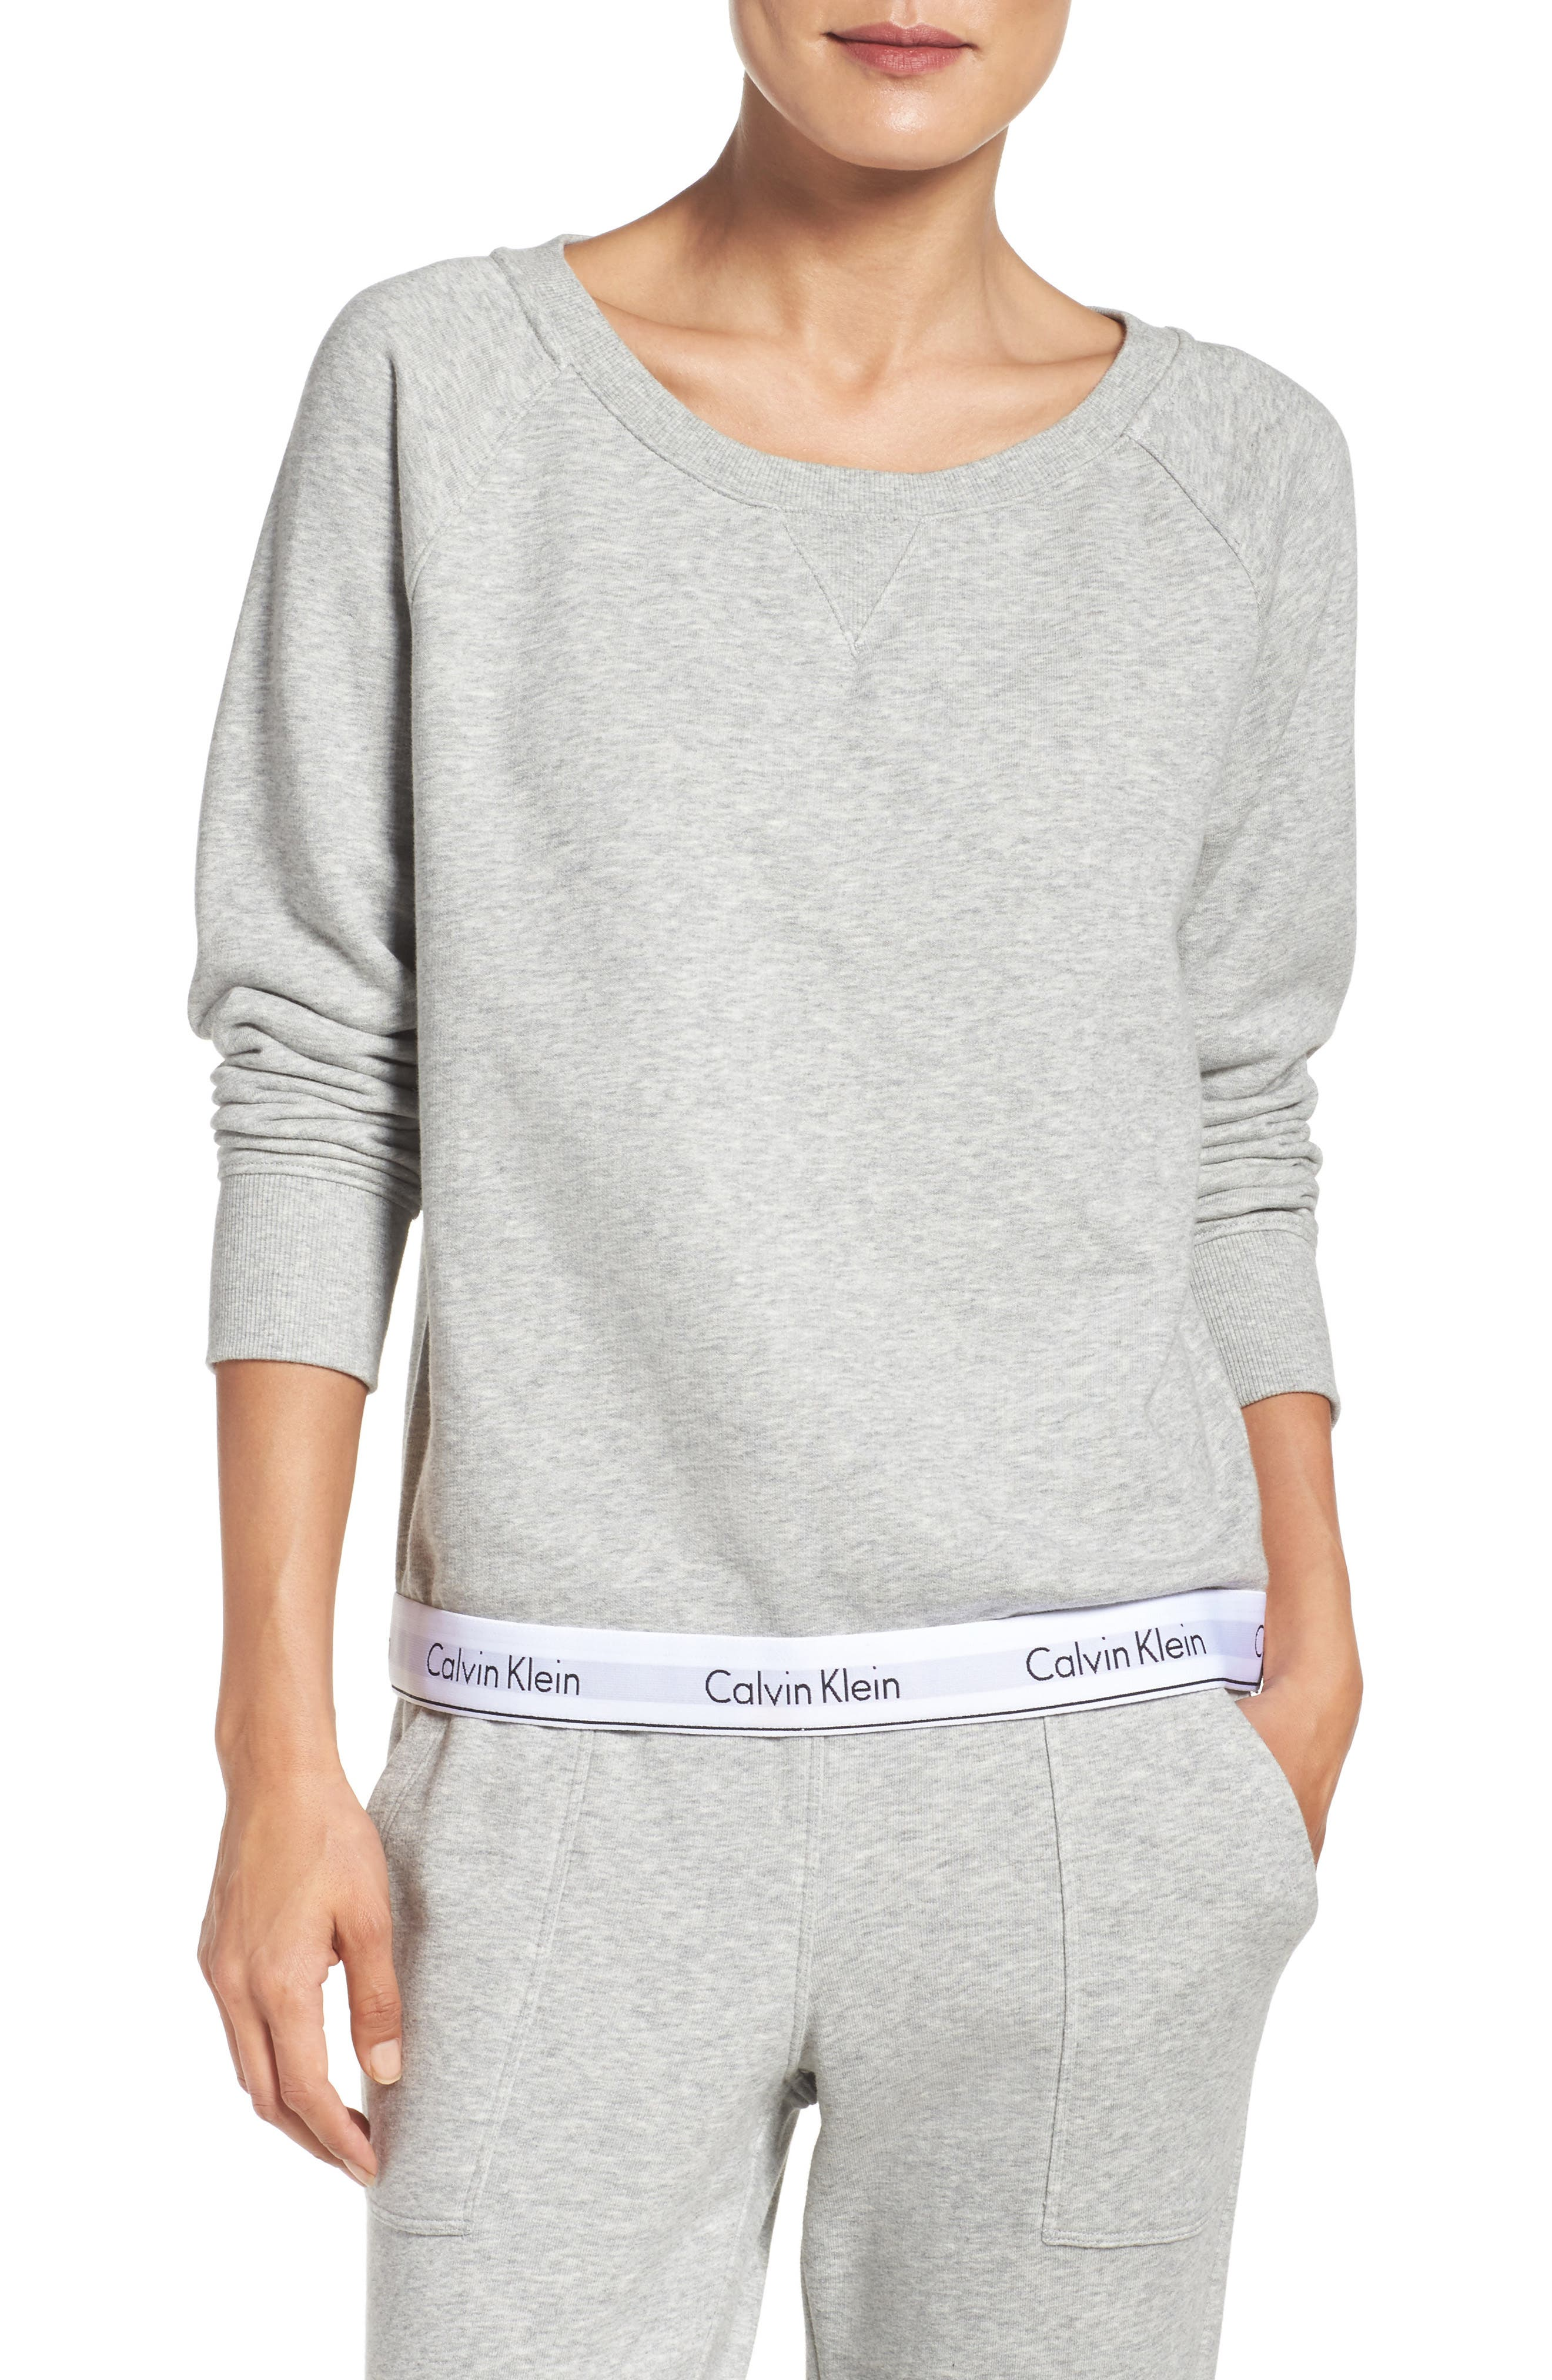 Alternate Image 1 Selected - Calvin Klein Lounge Sweatshirt